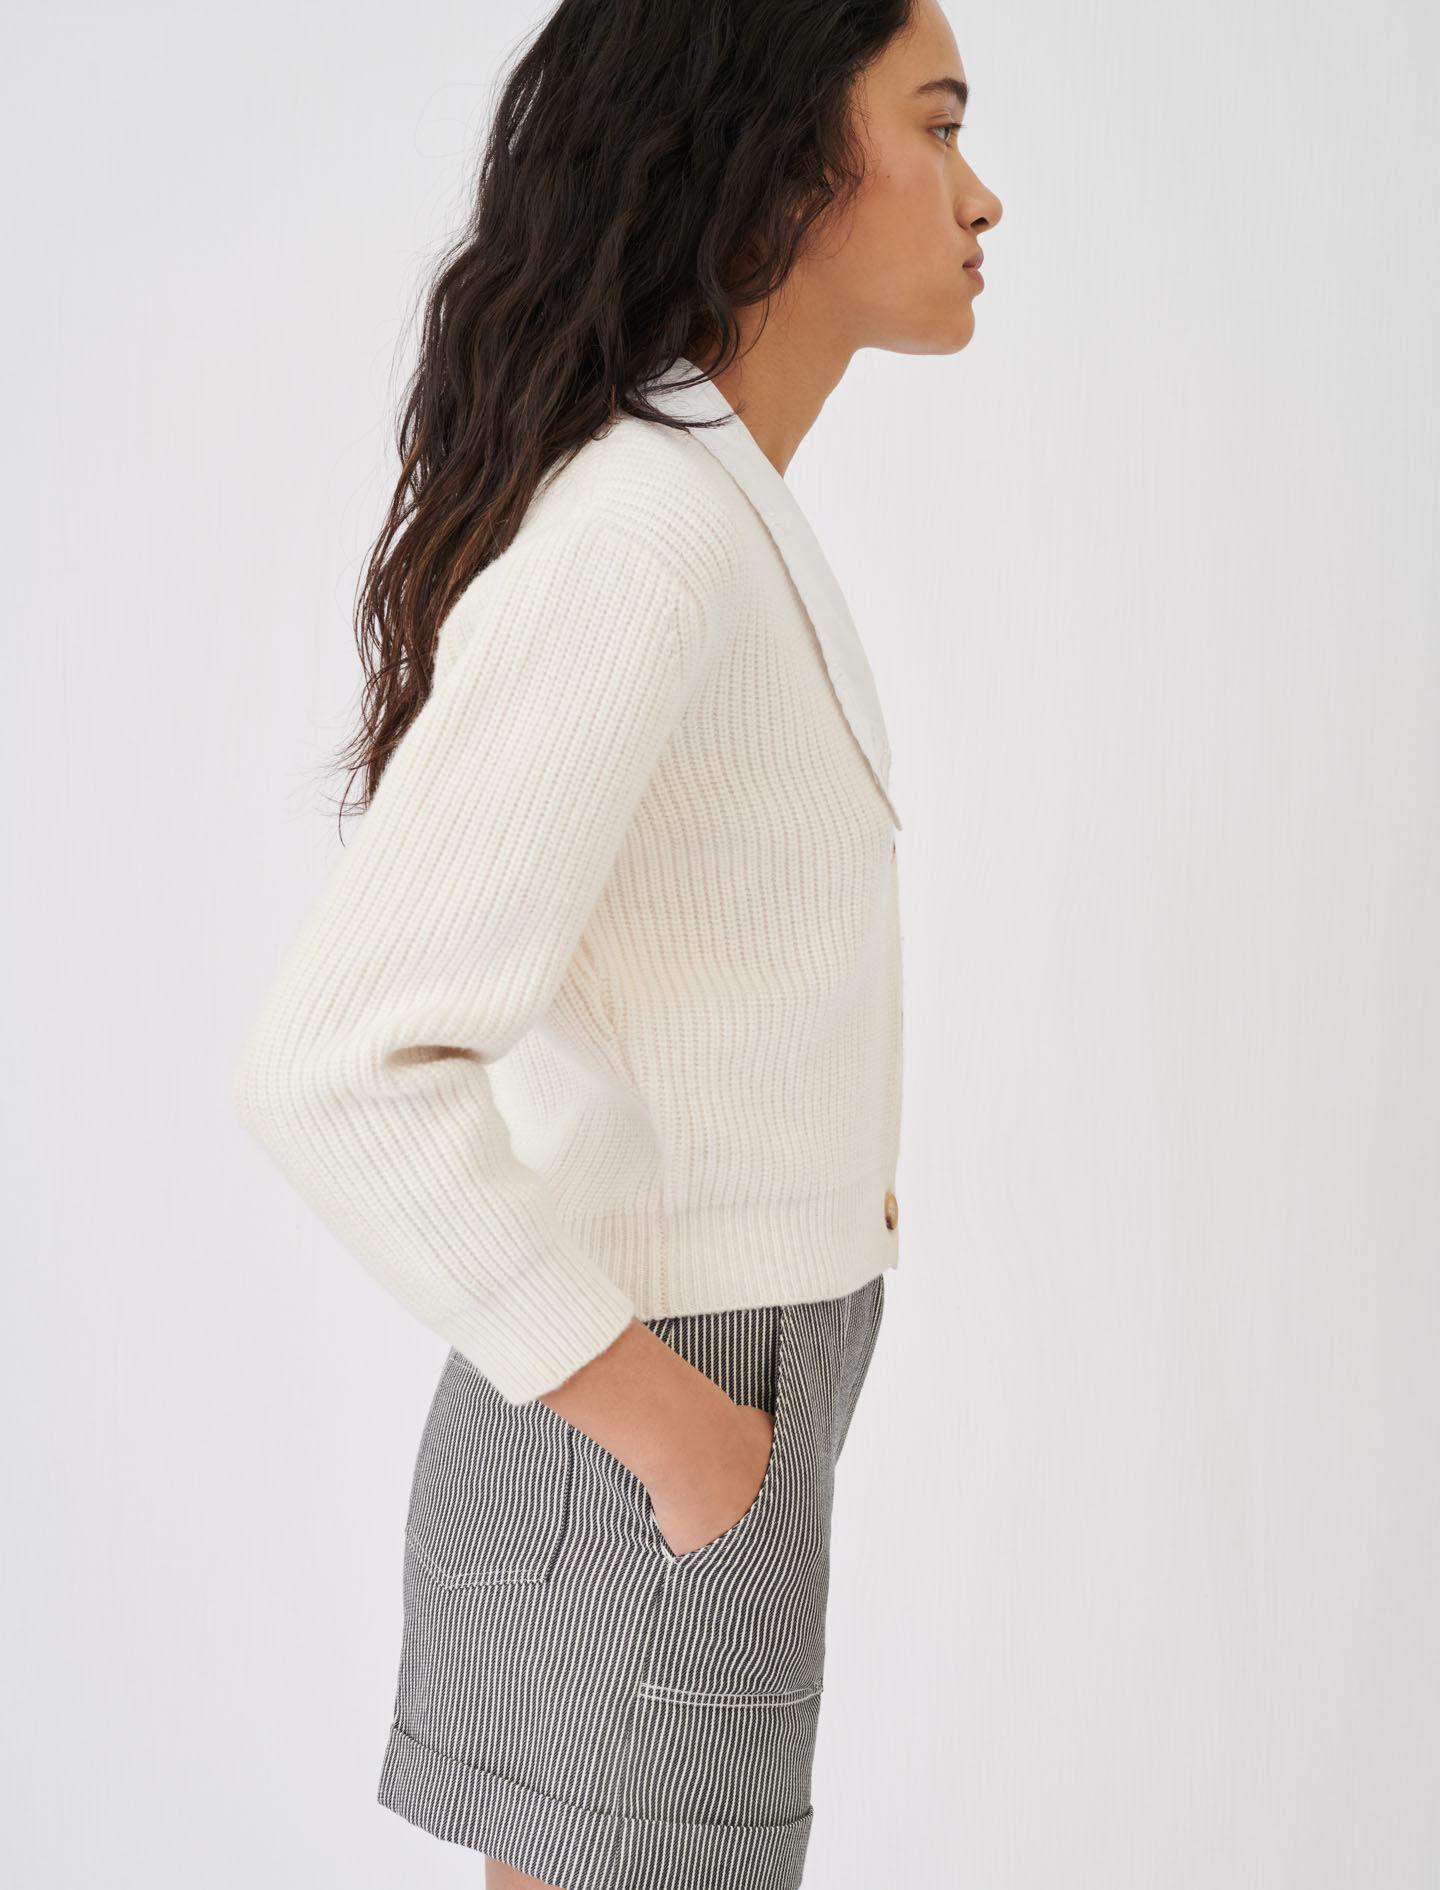 CROPPED CARDIGAN WITH LARGE COLLAR 3